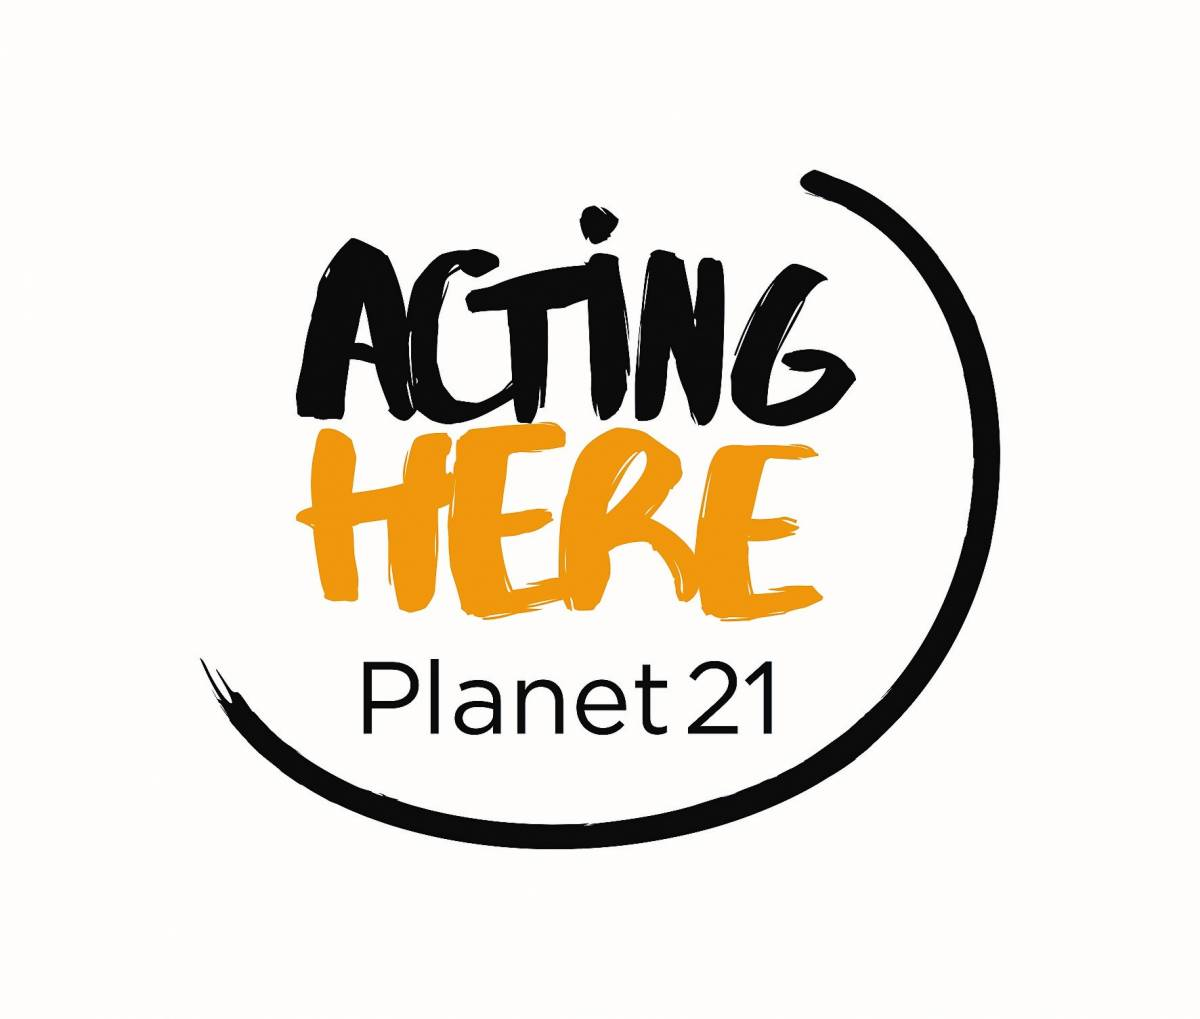 AccorHotels Wins PATA Grand Award for Planet 21 Corporate Environment Programme